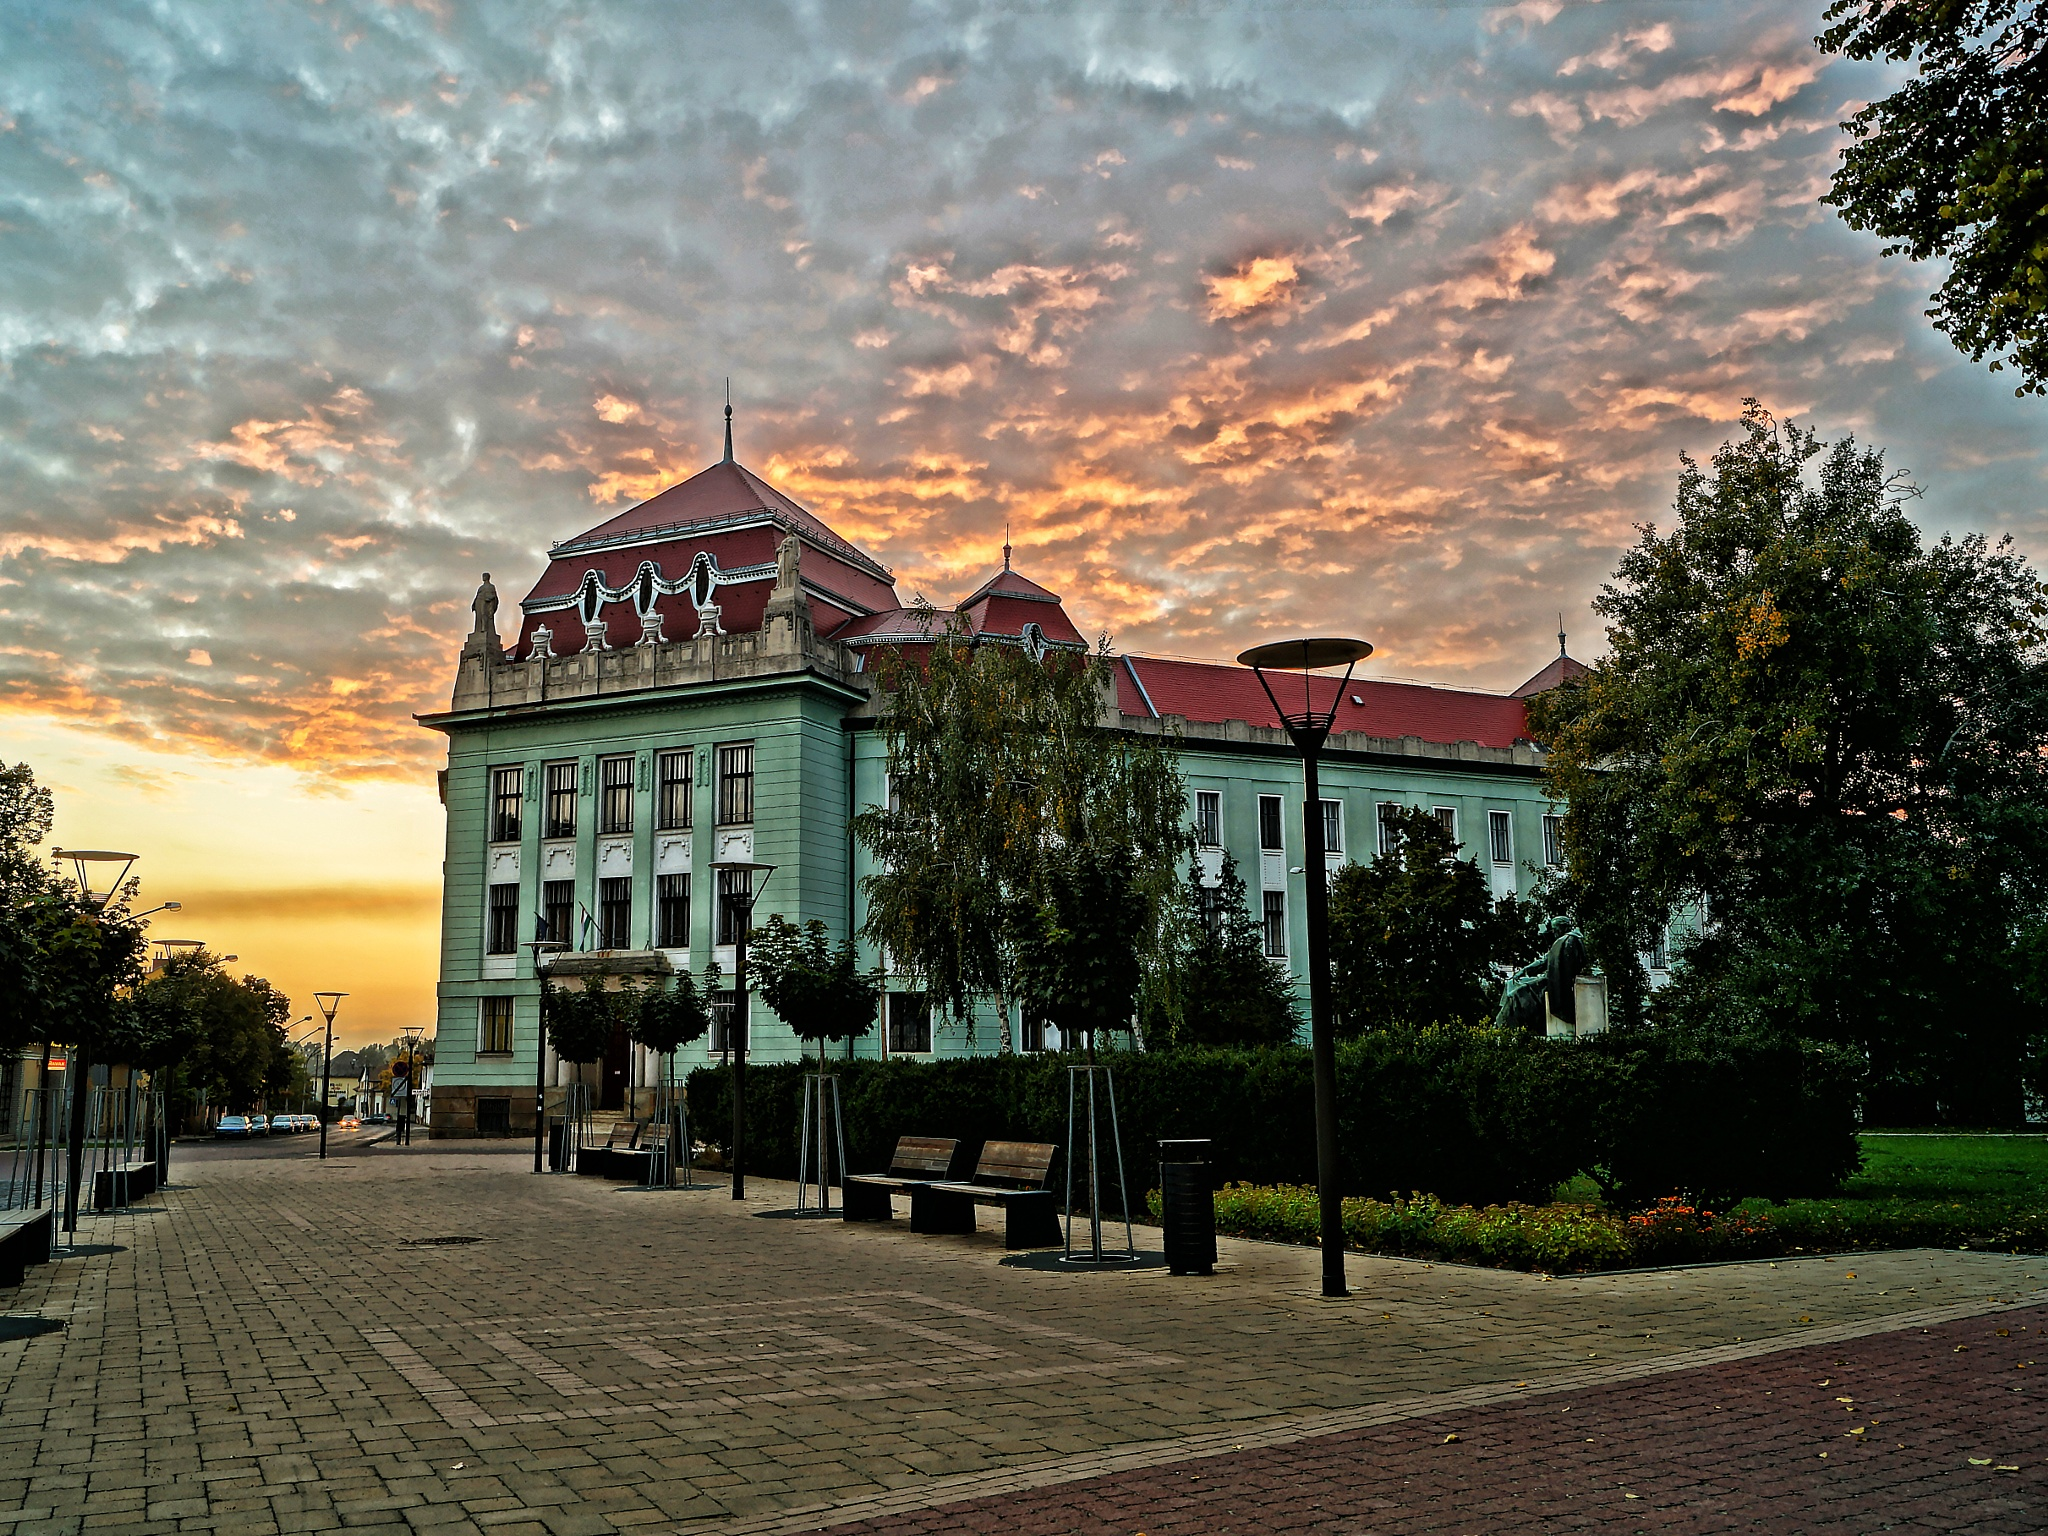 Court of justice & sunset by Sevoir